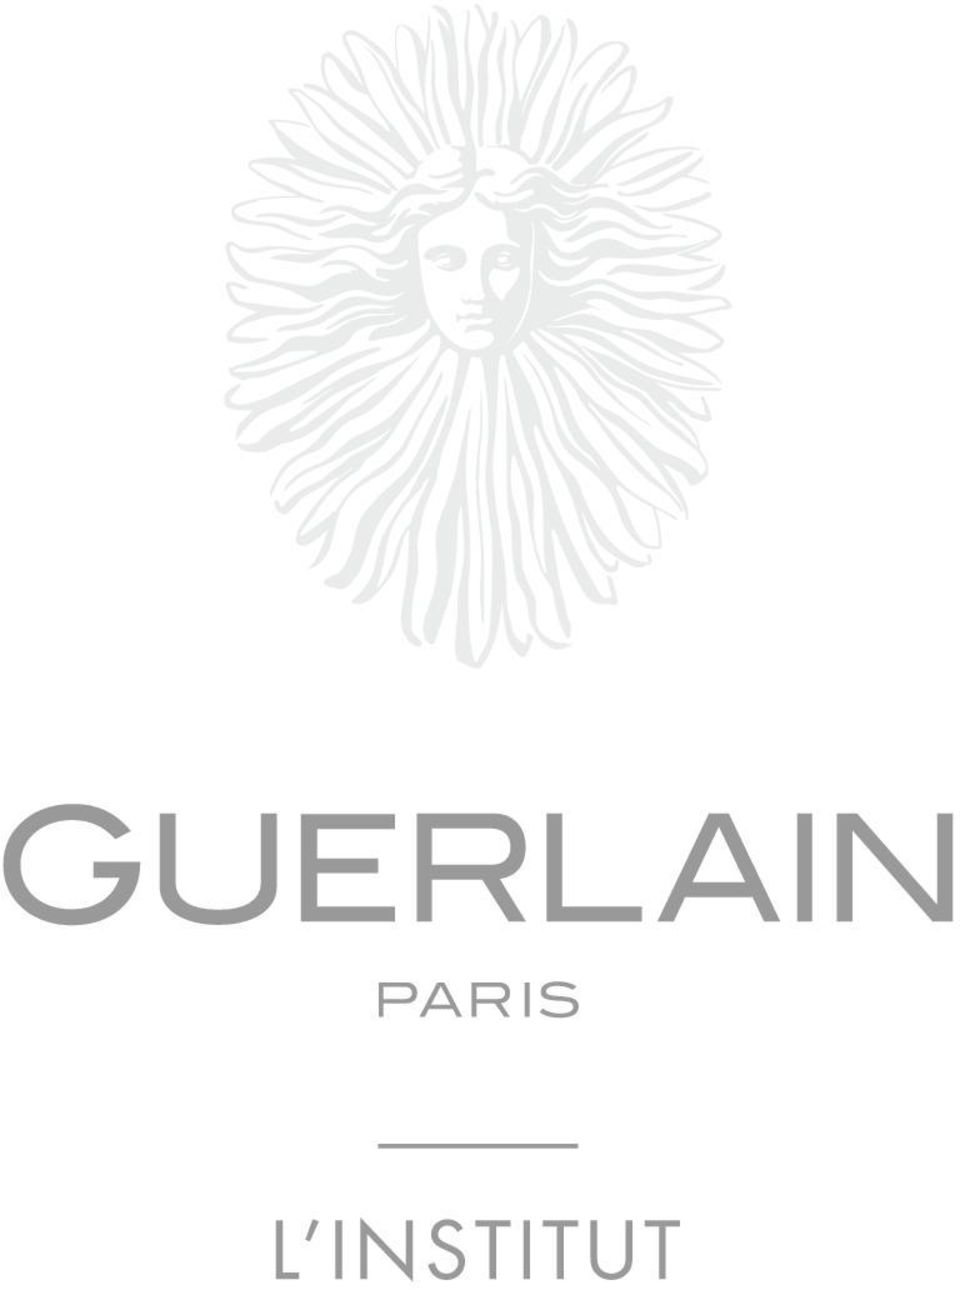 L'Institut Guerlain - Paris